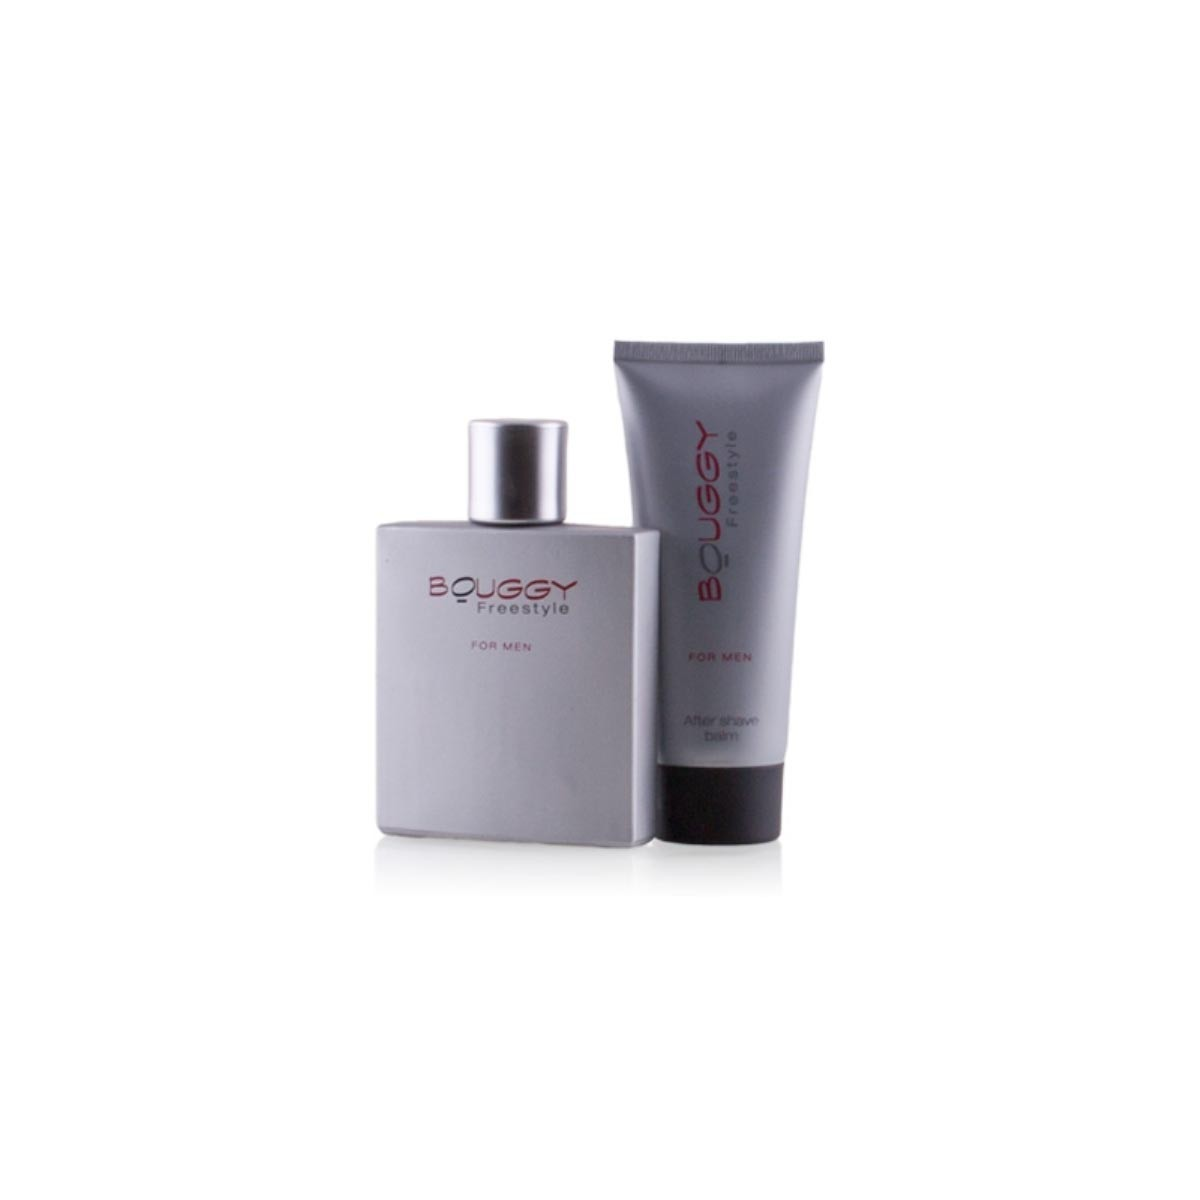 Consumo fragrances Bouggy For Men Eau De Toilette 100ml After Shave 100ml